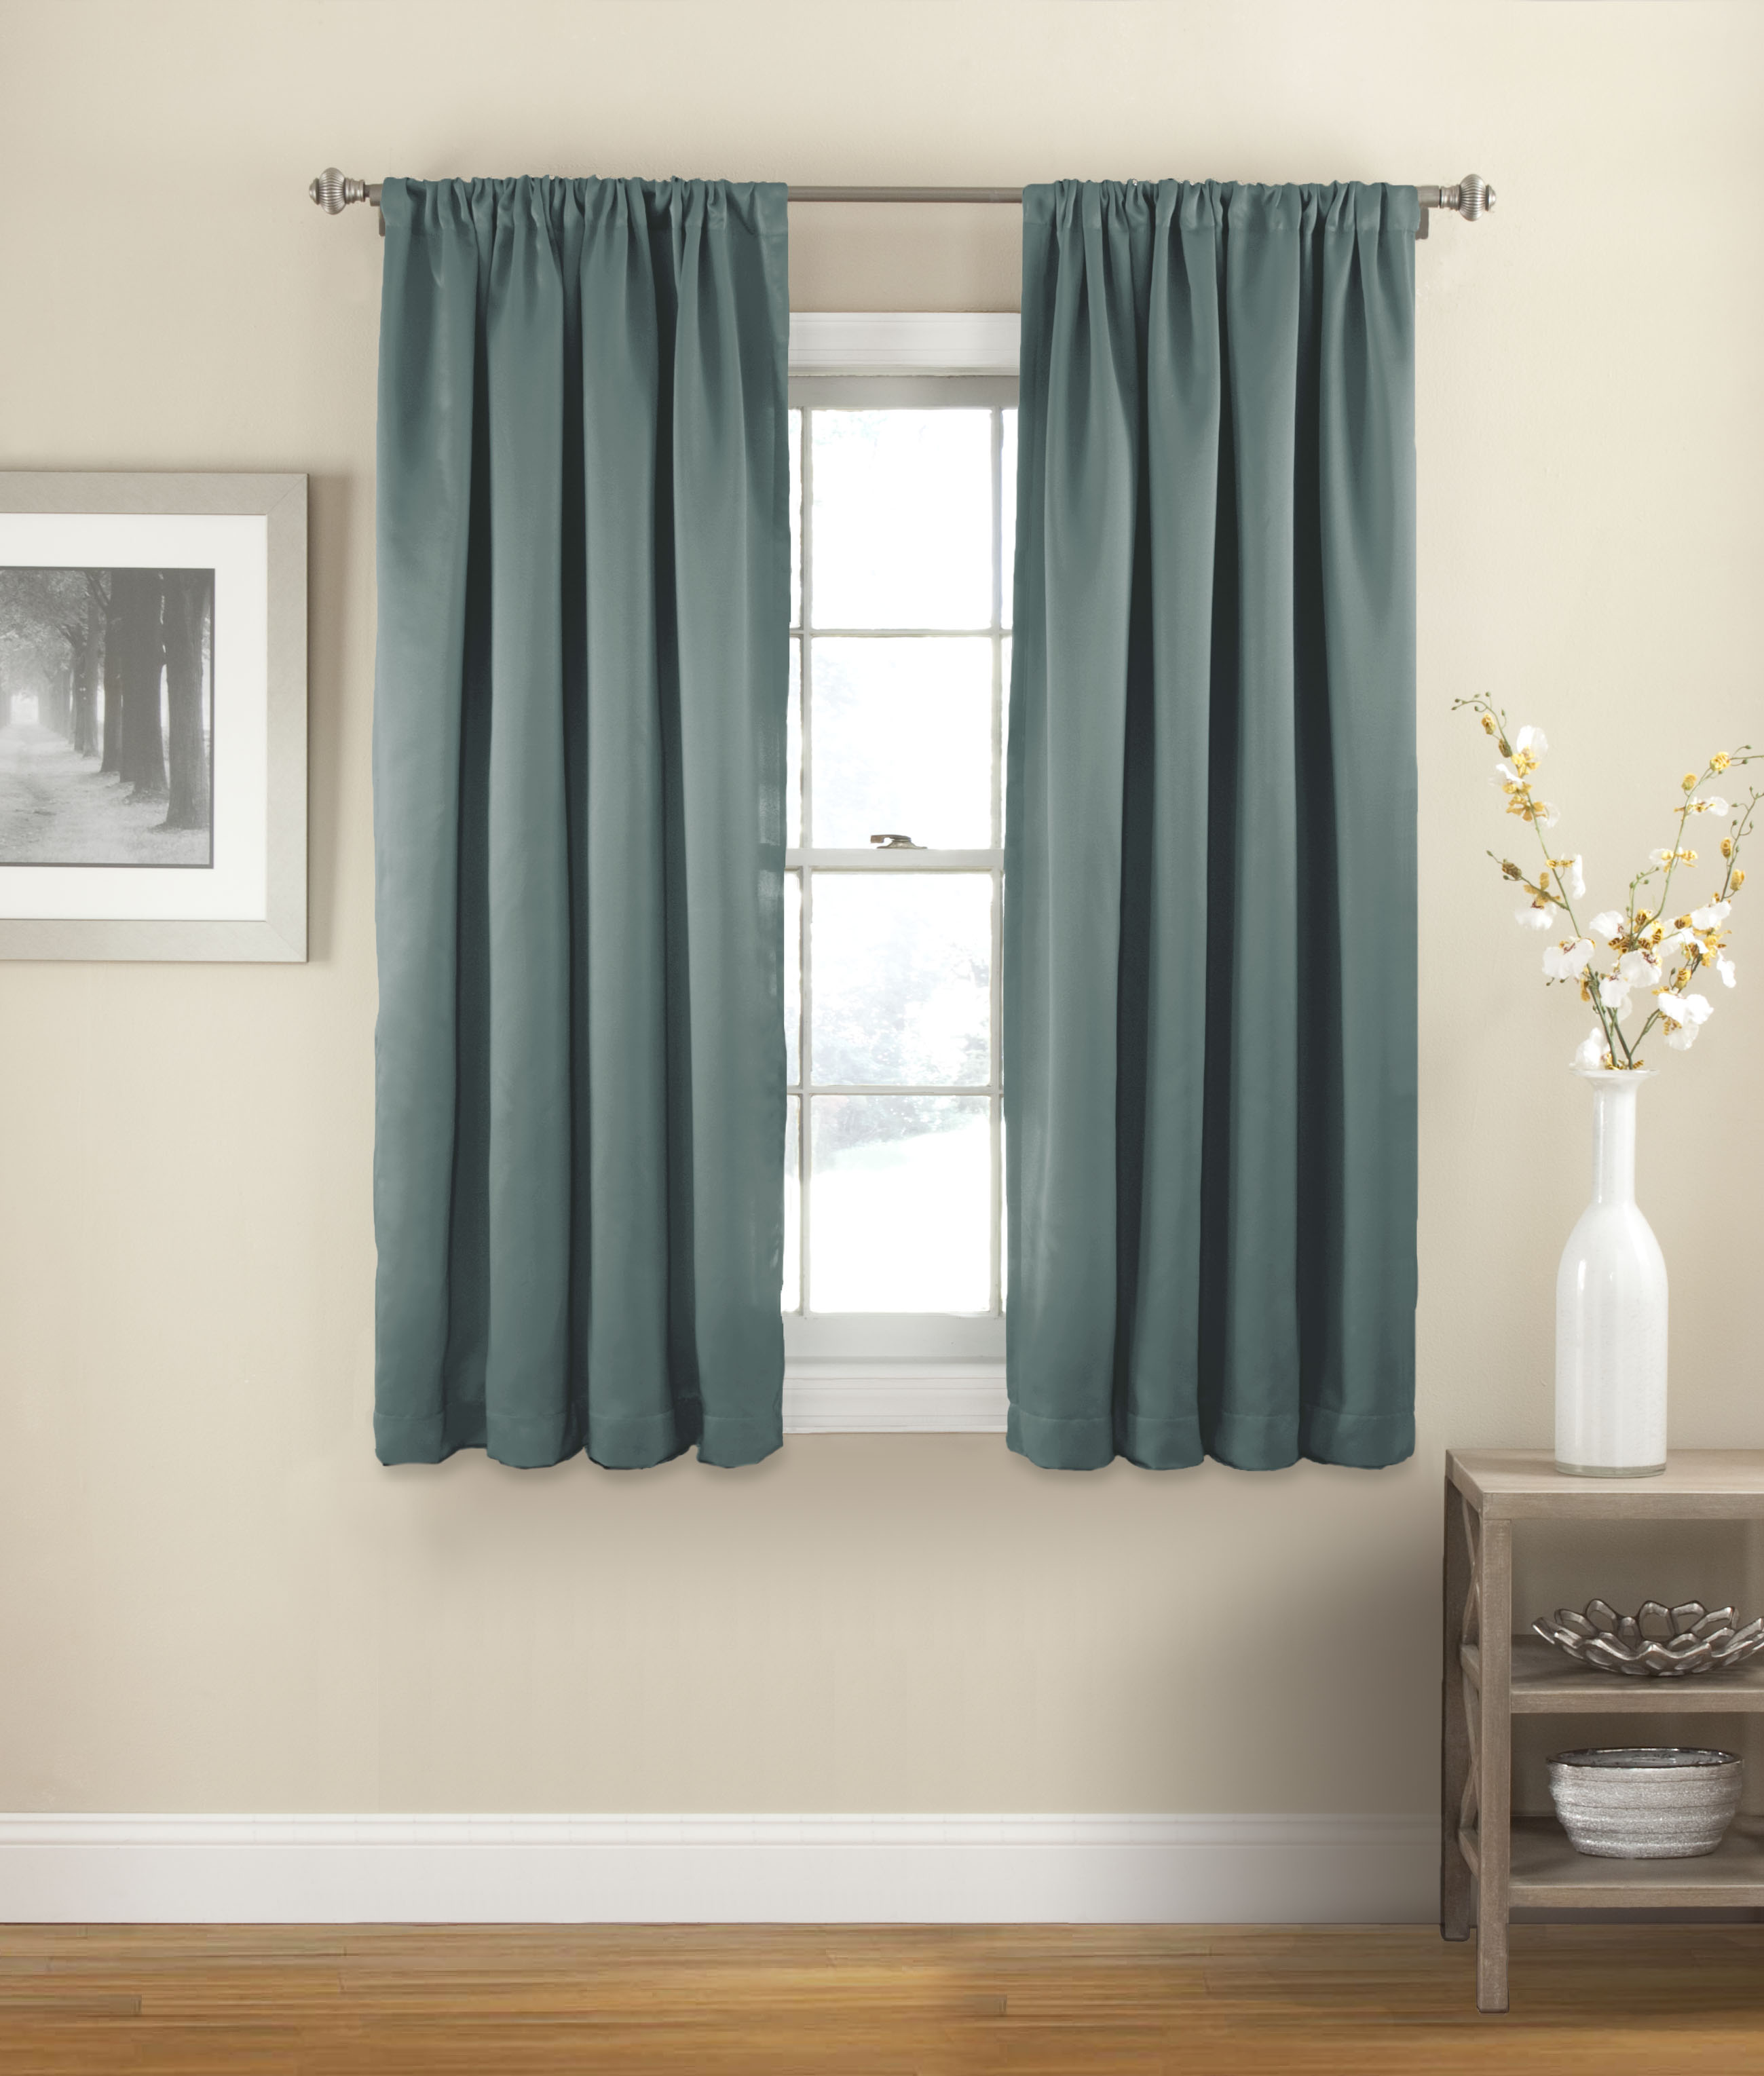 Swinging river beaded curtain